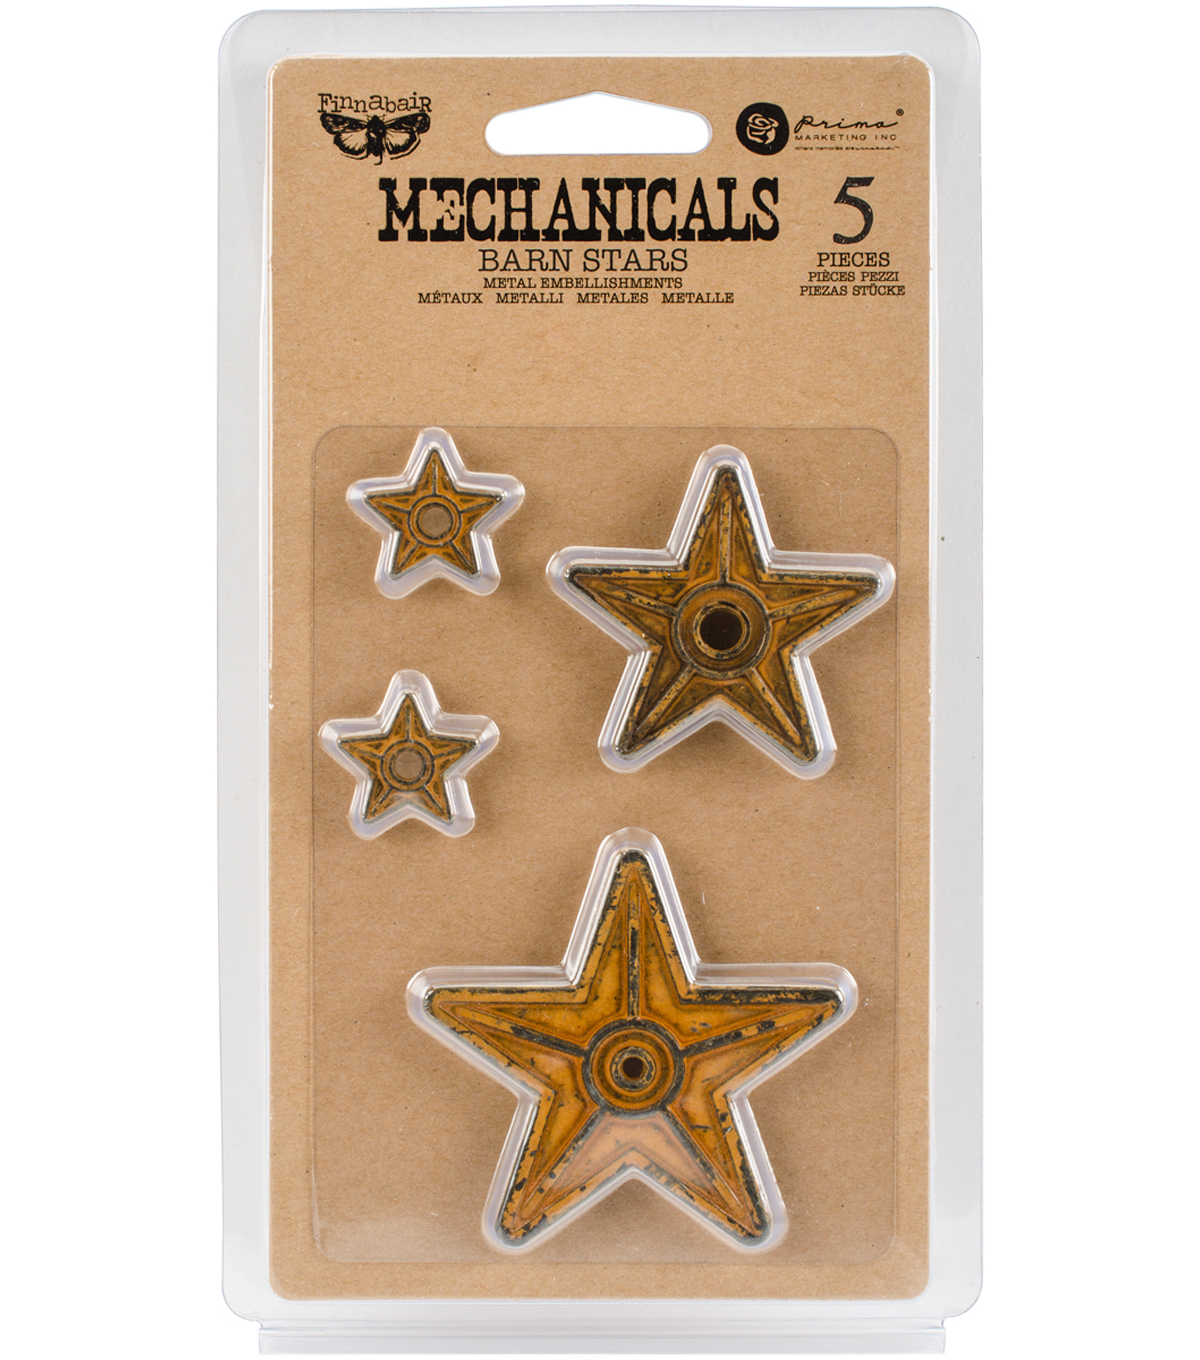 Barn Stars-mechanicals Emblshmt